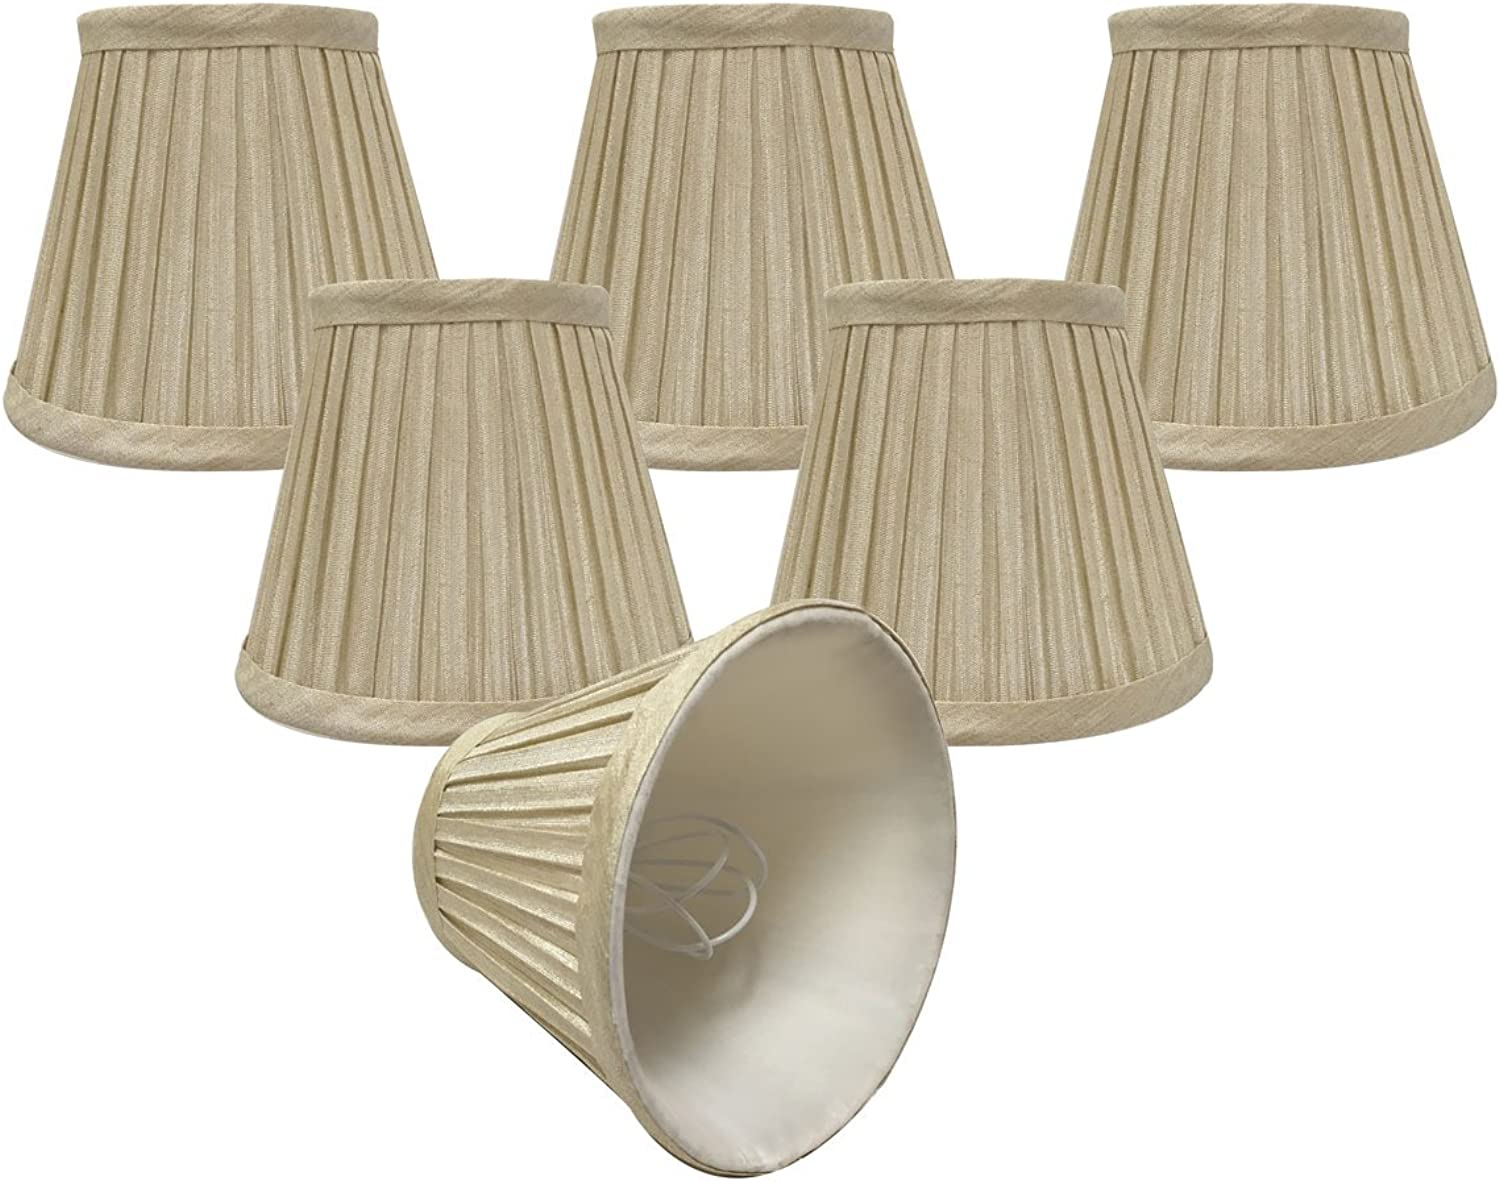 Royal Designs, Inc CSO-1032-5BG-6 Royal Designs Chandelier Lamp Shades - 3  x 5  x 4.5  - Pleated Empire - Beige - Clip-On - Set of 6, 6 Piece